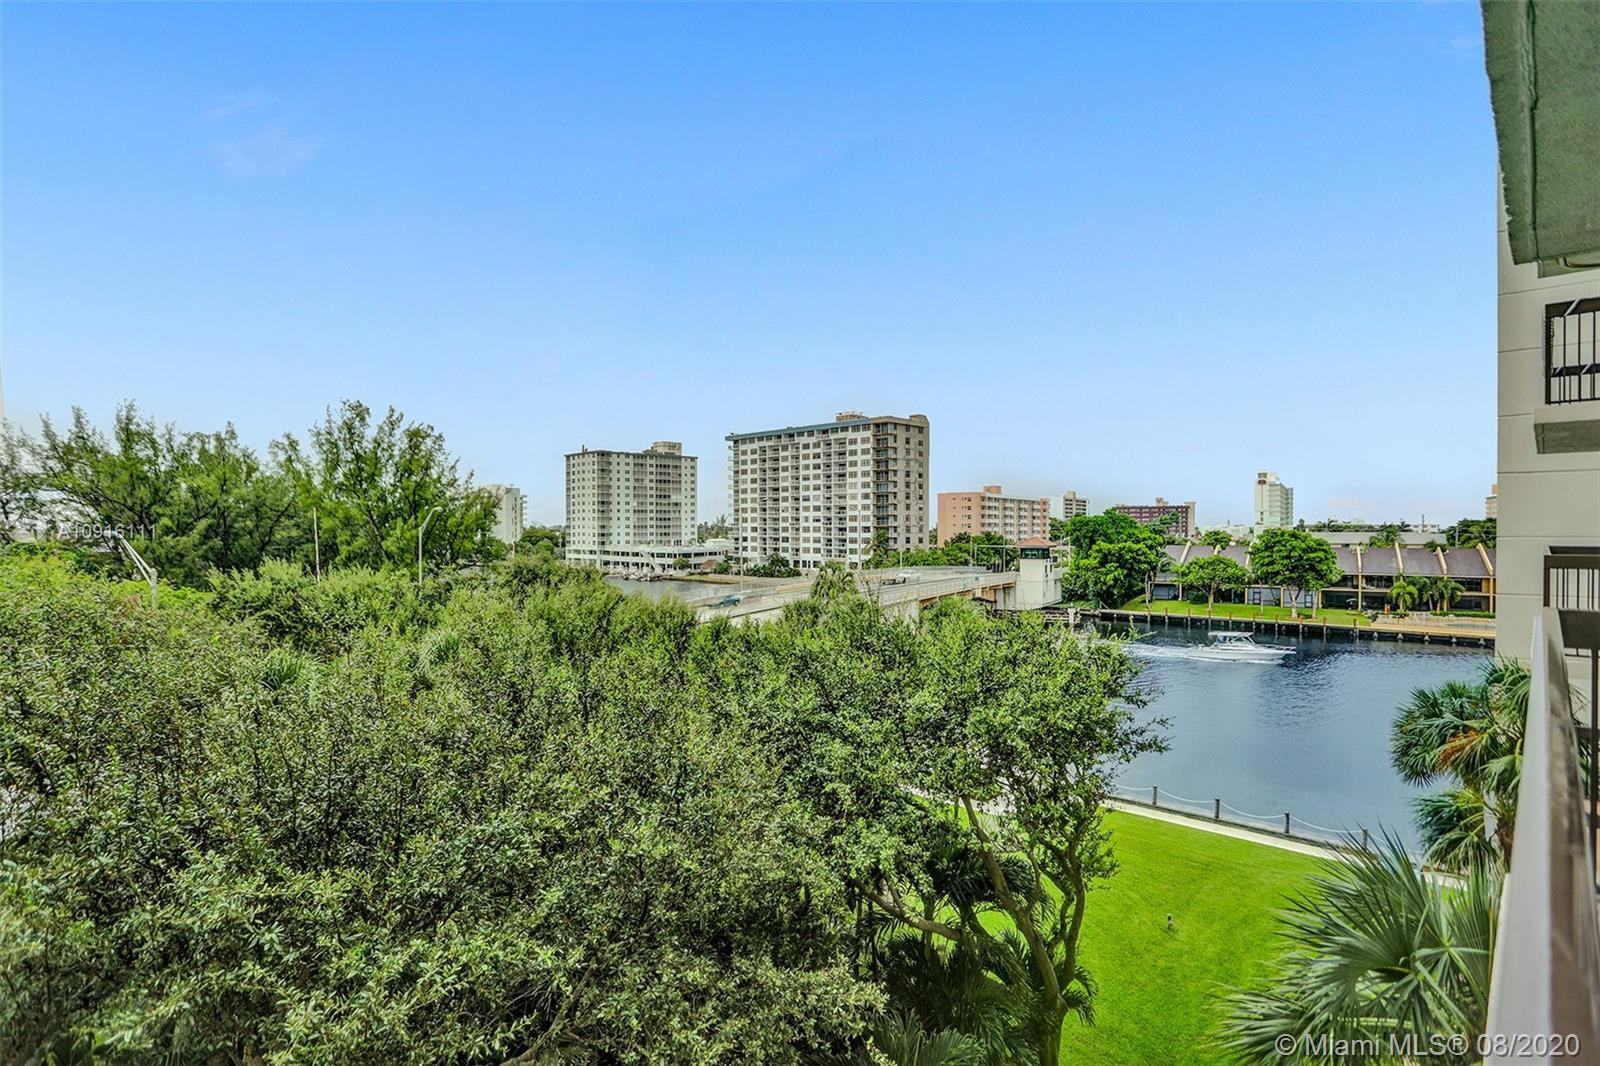 MOTIVATED SELLER! Minutes from the beach! This 2/2 at Pompanos Voyager Condo has Direct intercoastal